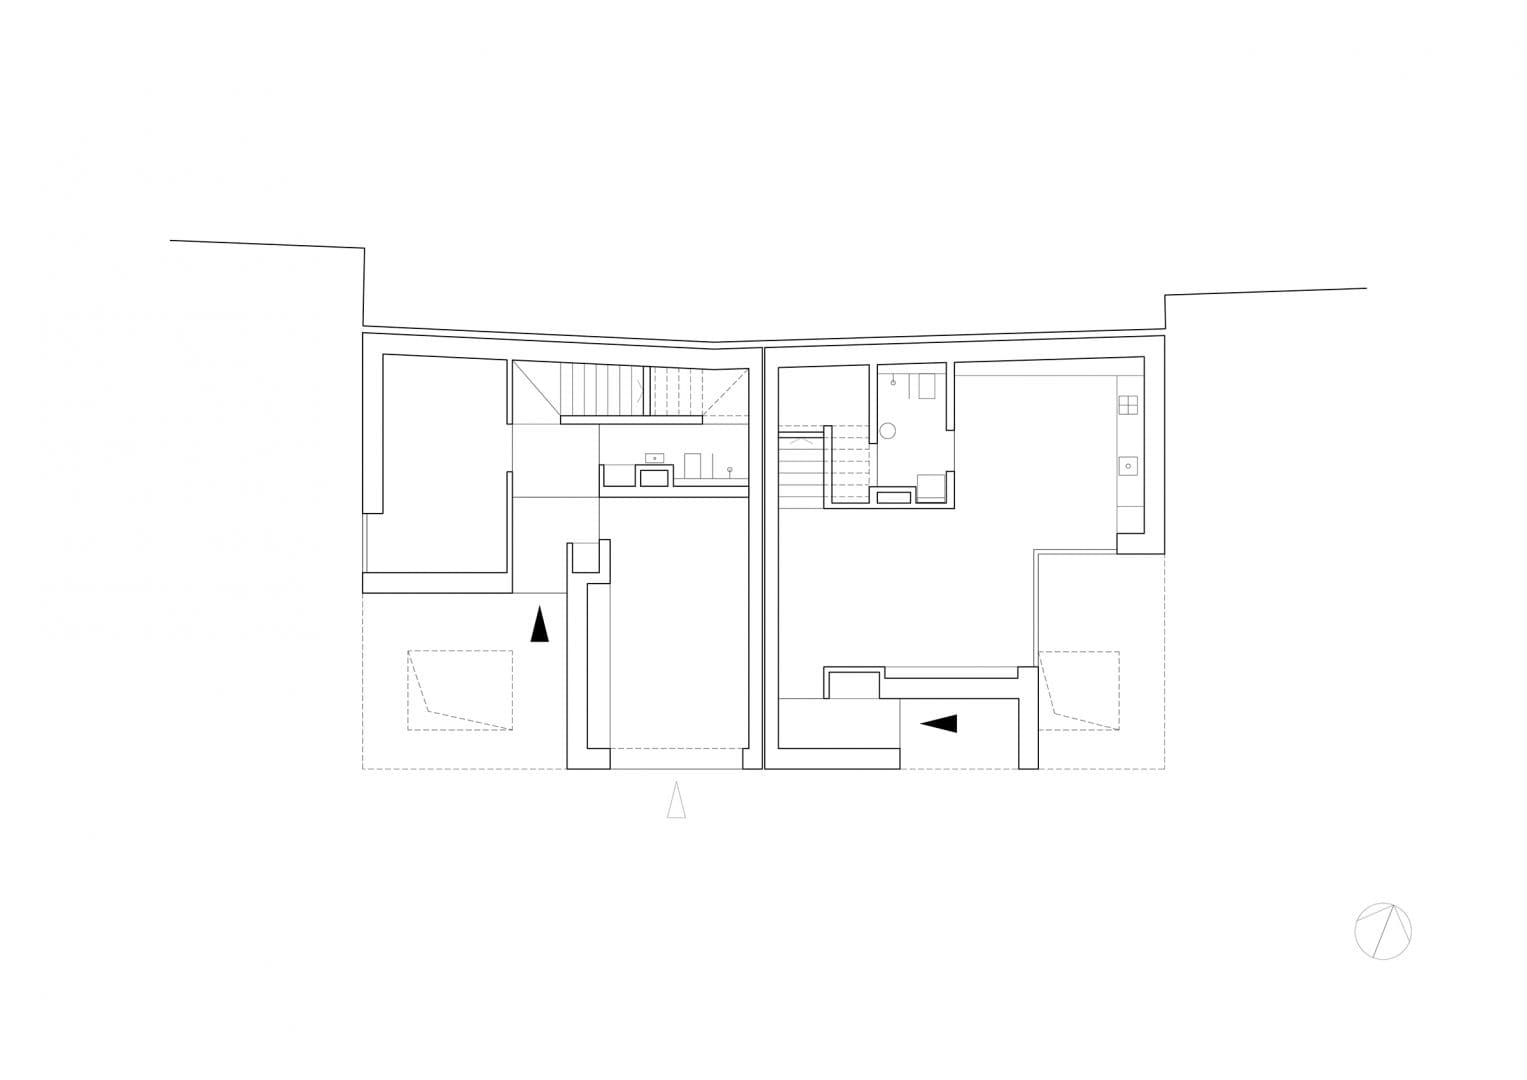 Ground Floor Plan - Buildings A & B